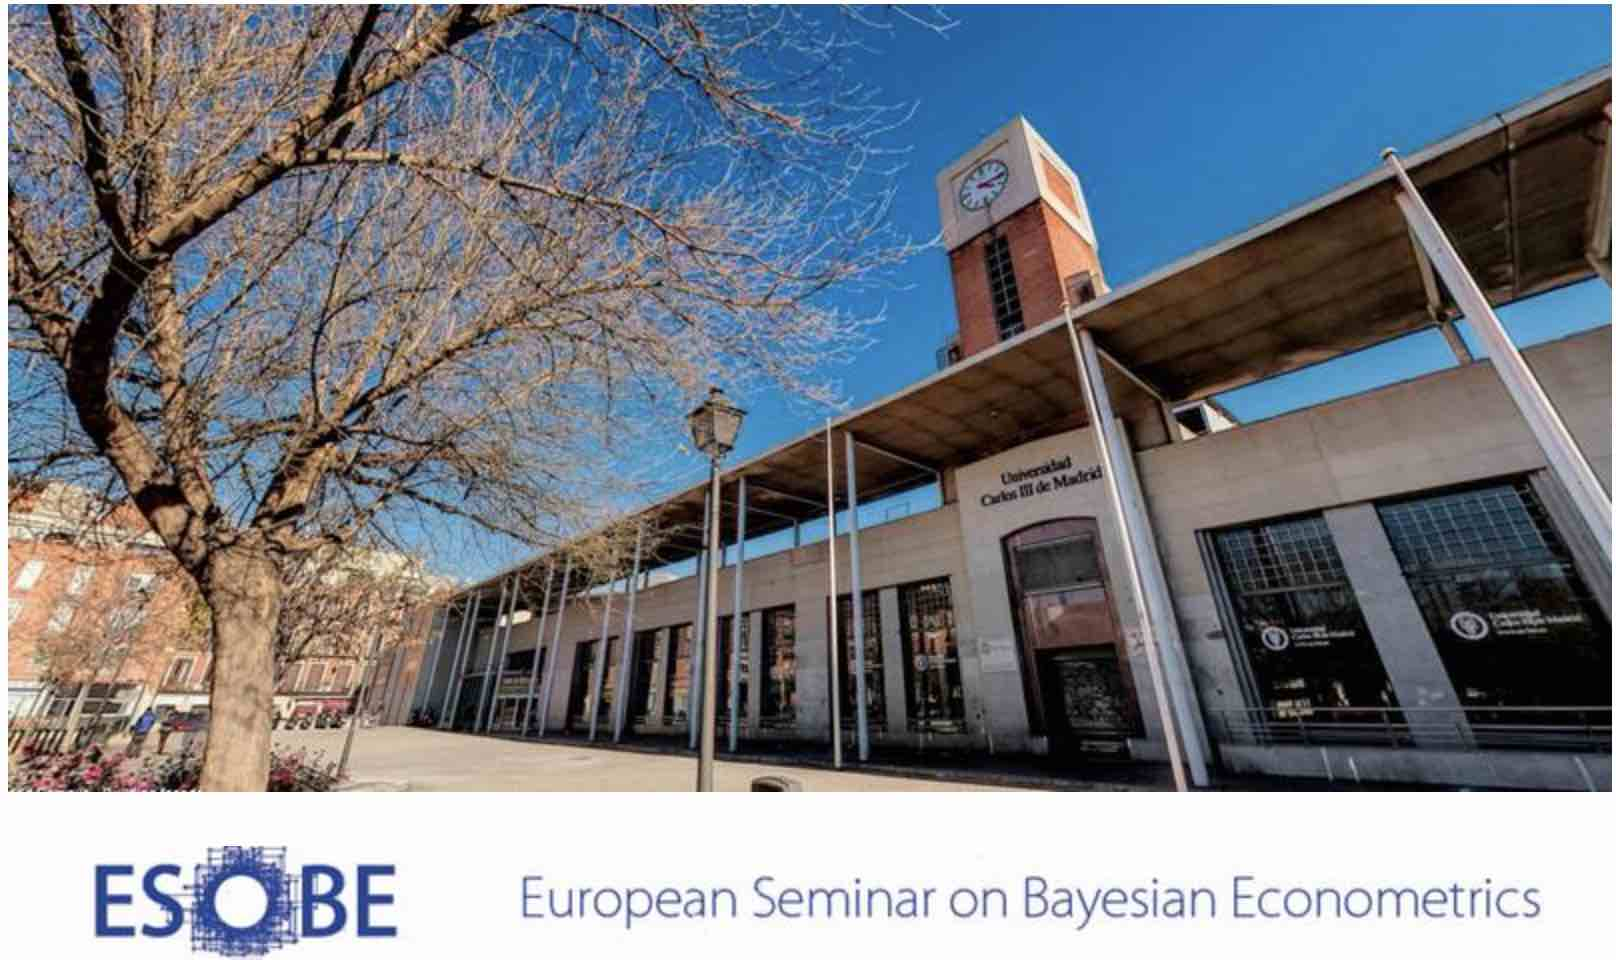 11th European Seminar on Bayesian Econometrics